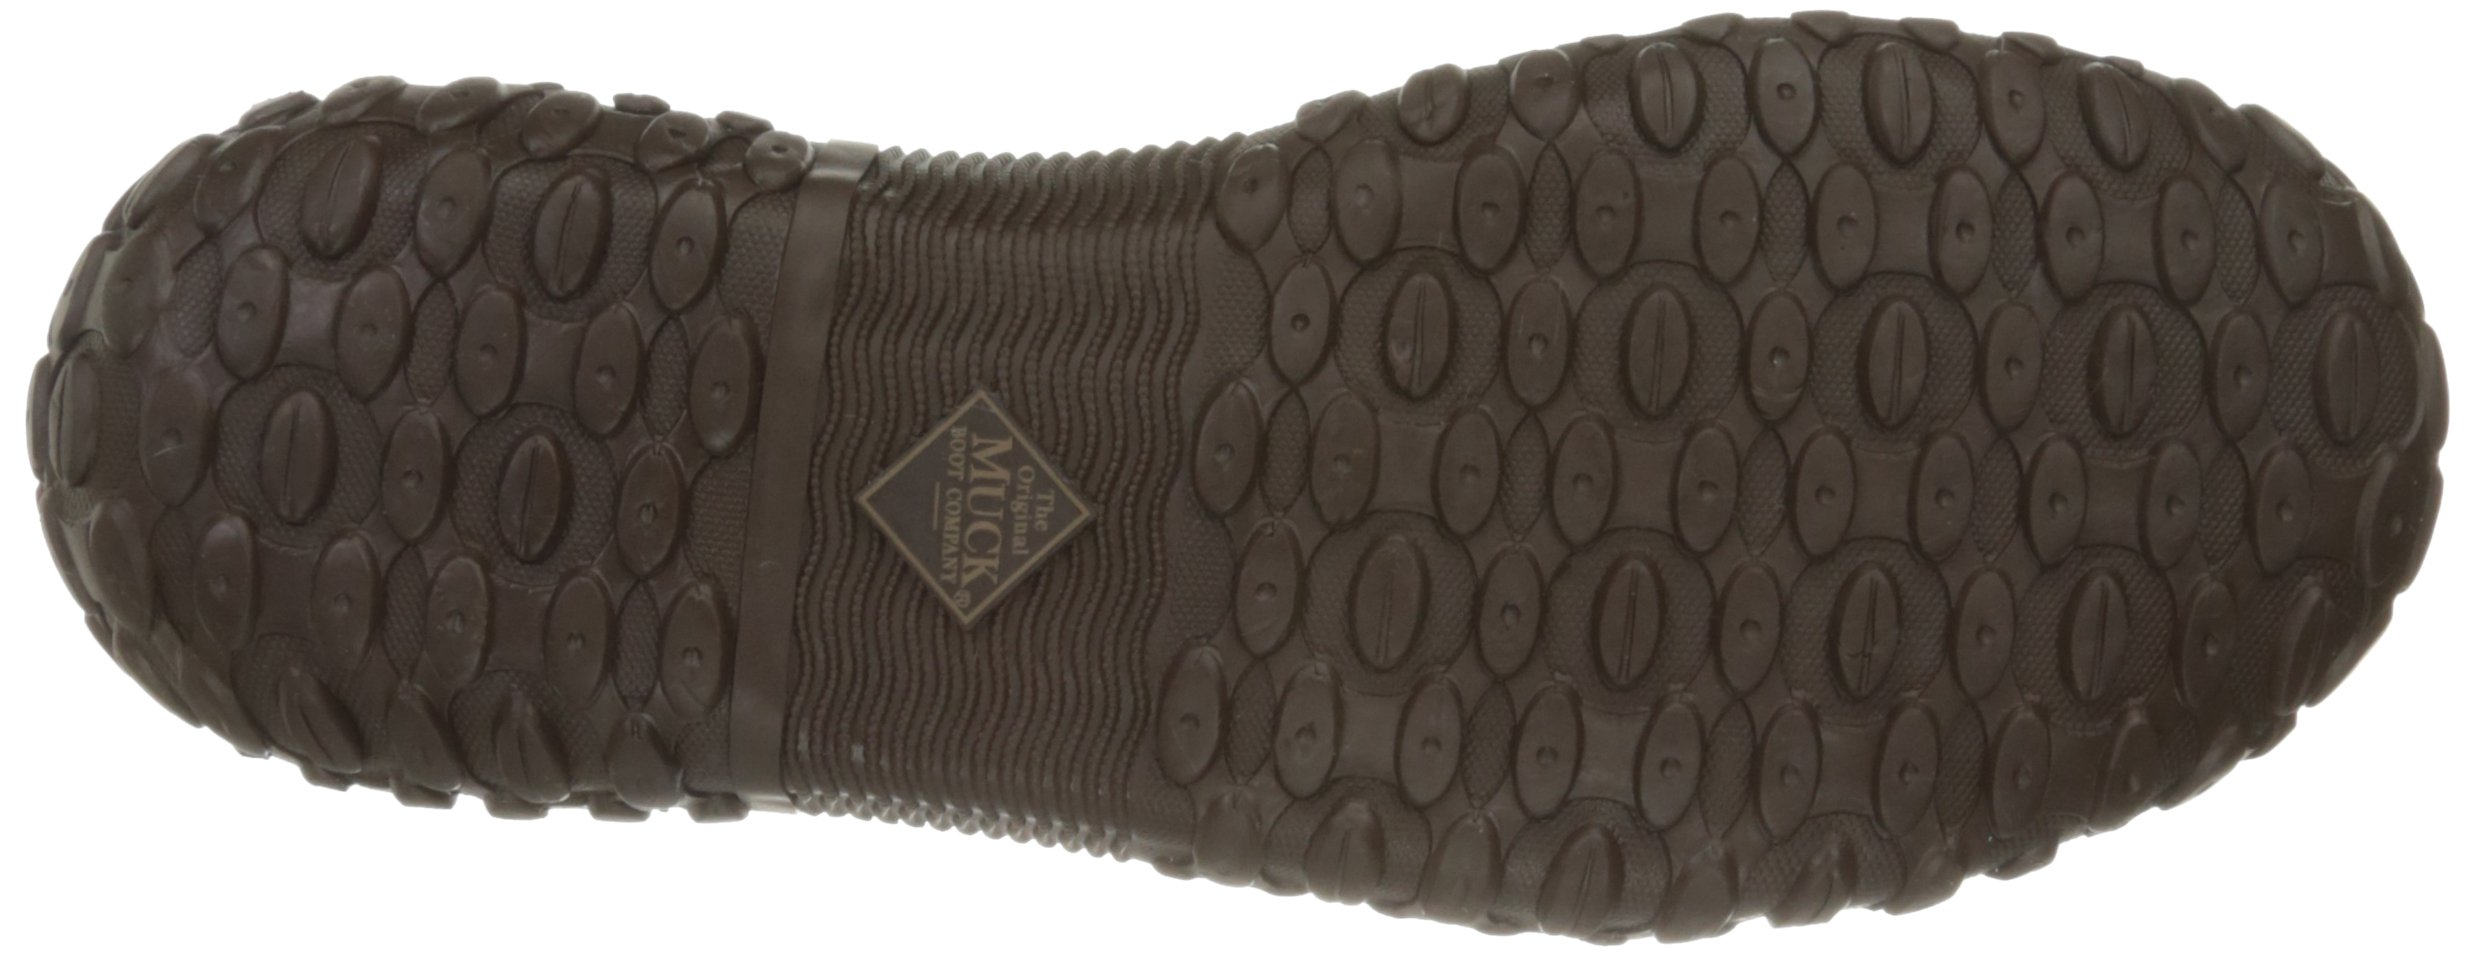 Muckster ll Men's Rubber Garden Shoes,Black/Otter,8 US/8-8.5 M US by Muck Boot (Image #3)